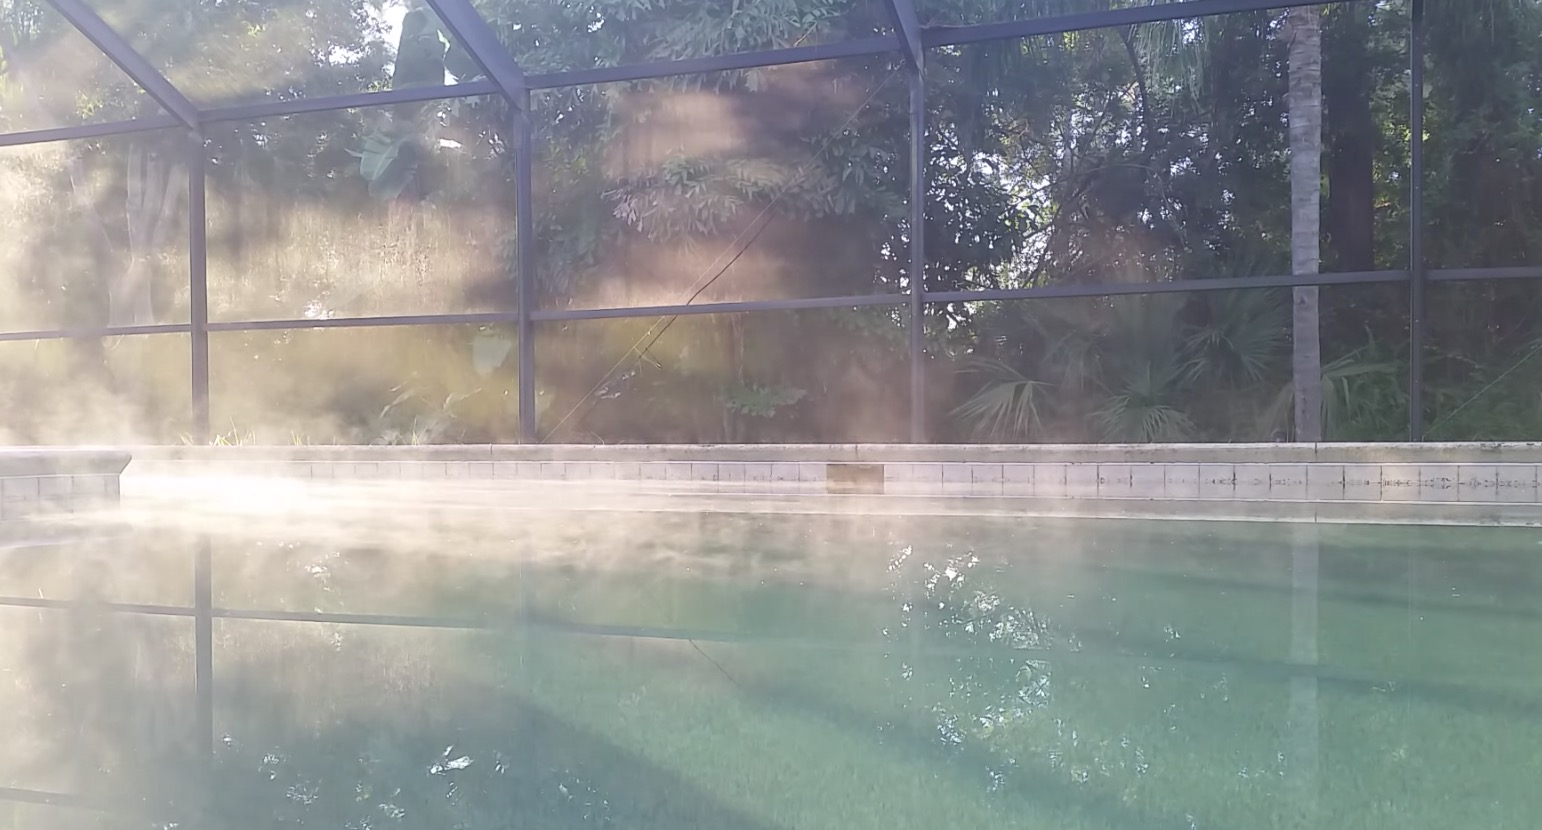 Do Heated Pools Cause More Evaporation And Water Use